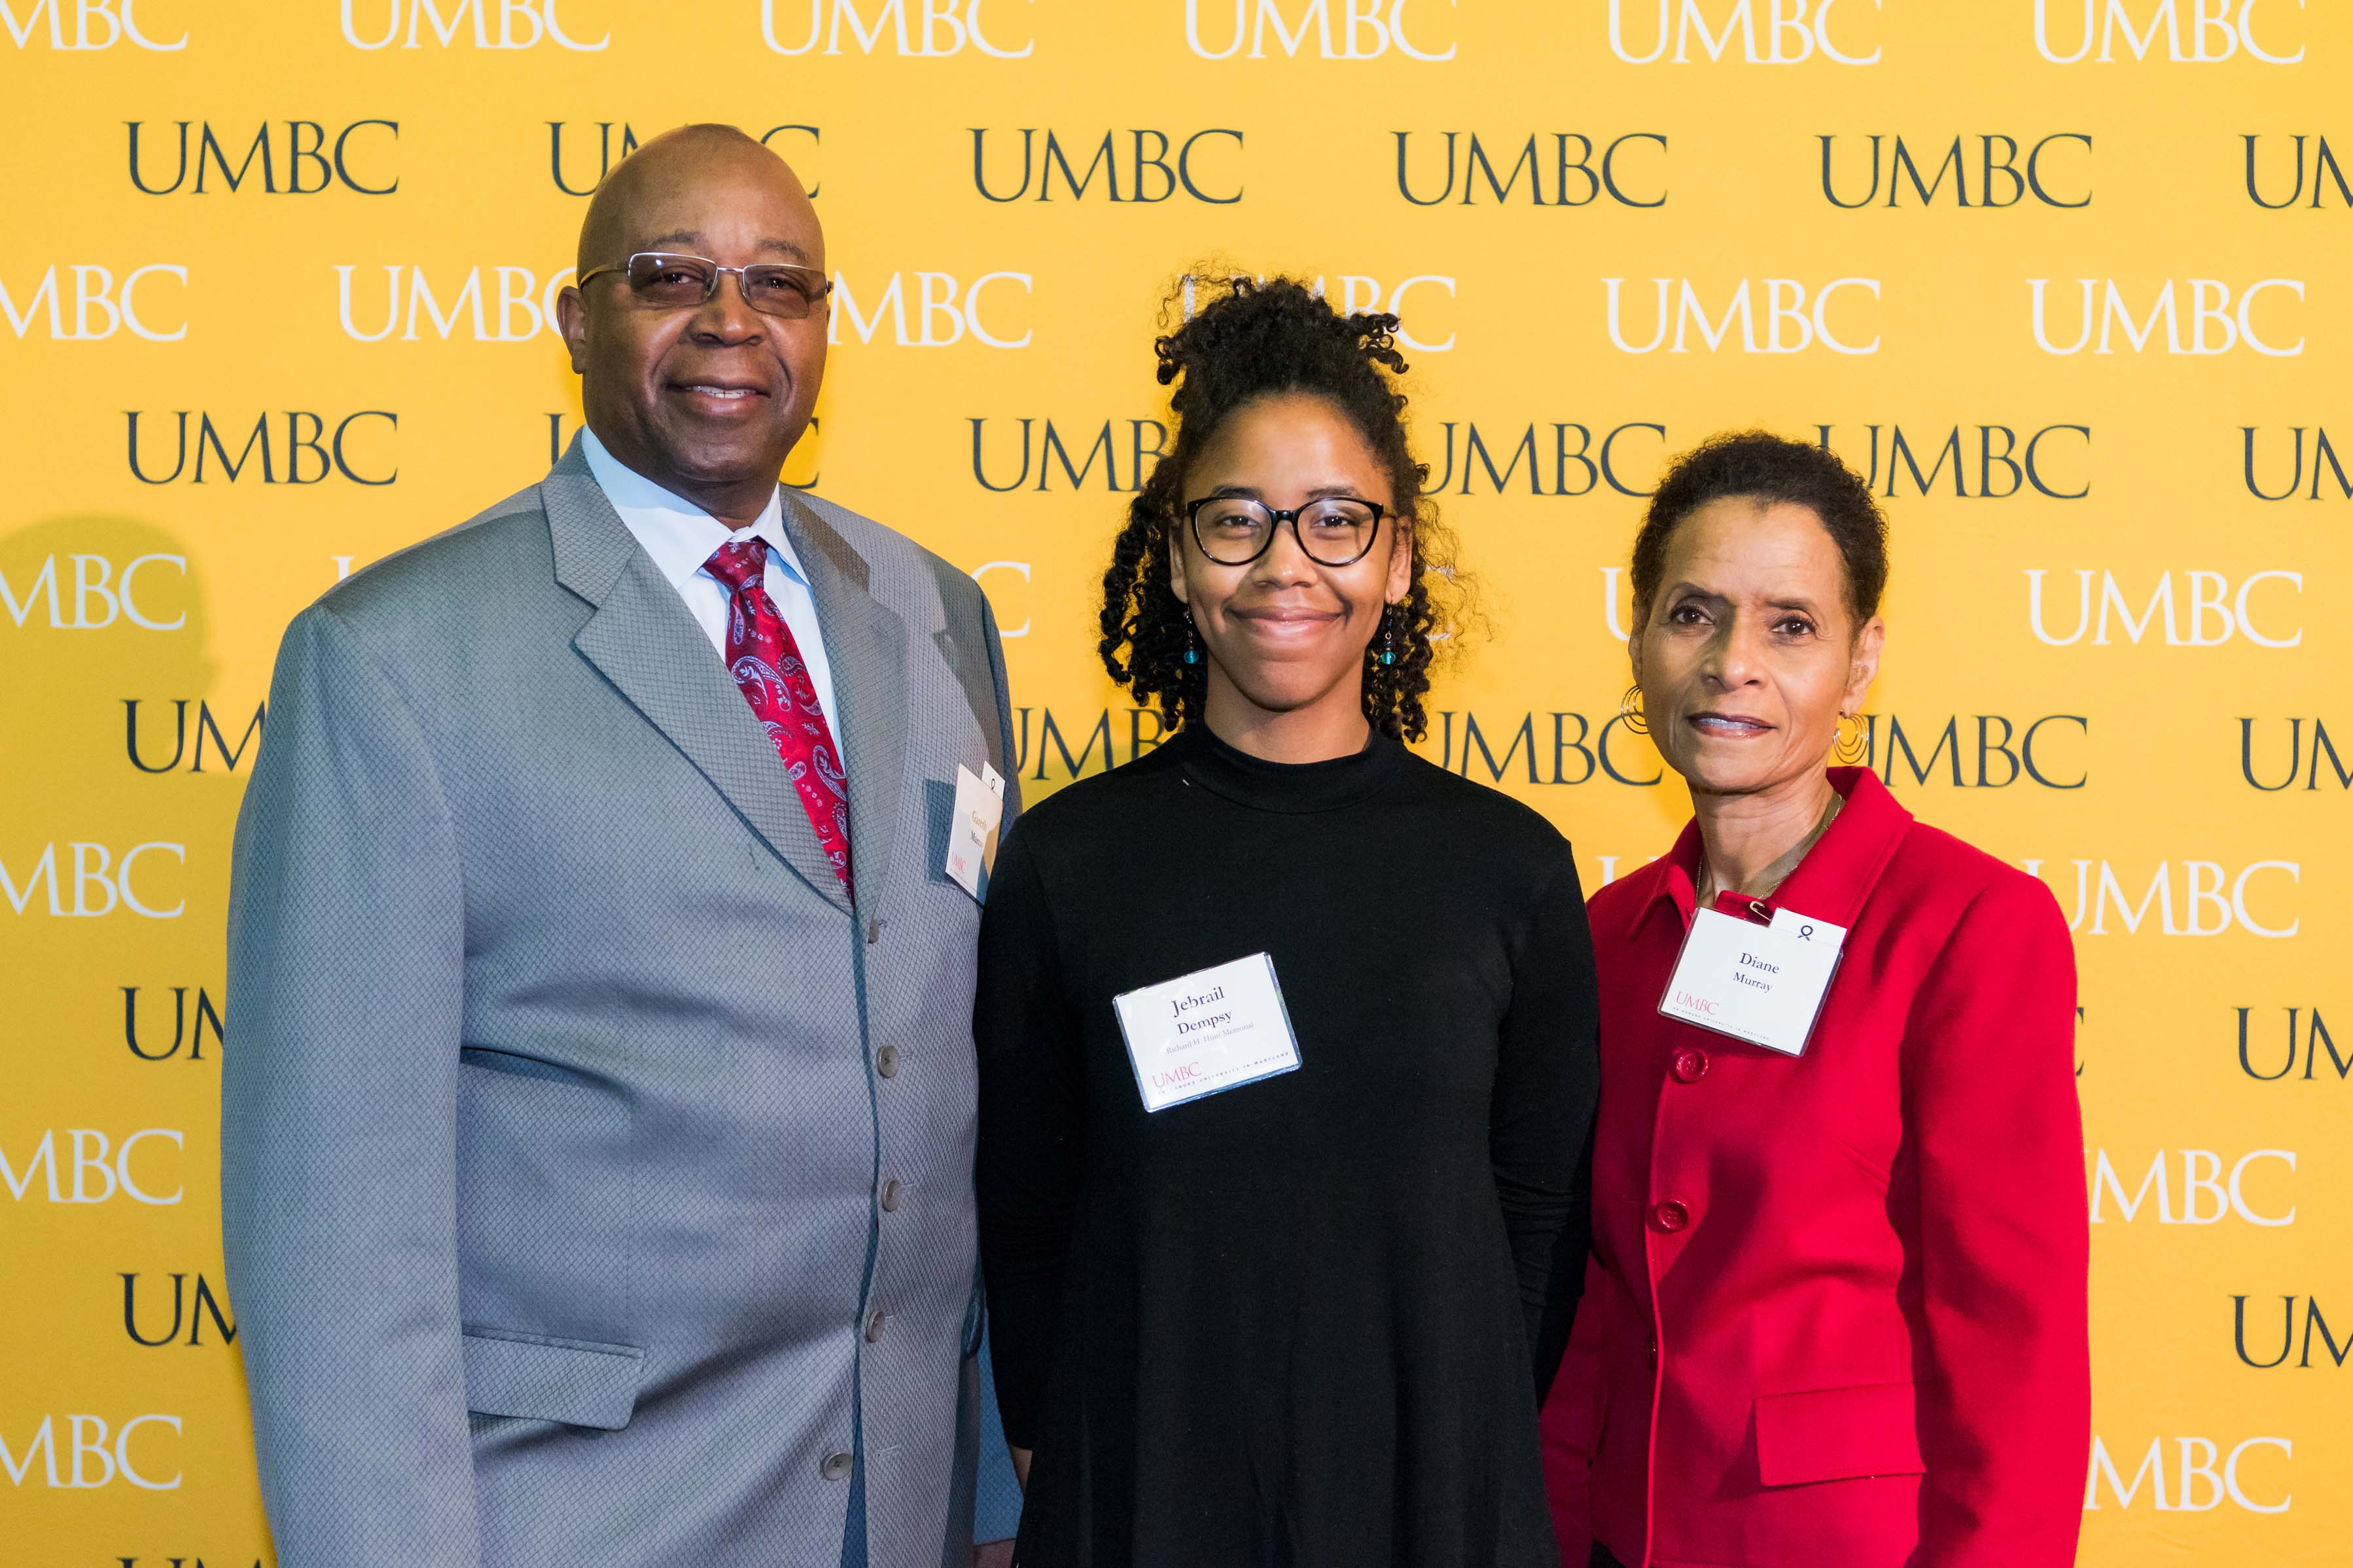 Three people pose in front of the UMBC wall at the scholarship luncheon